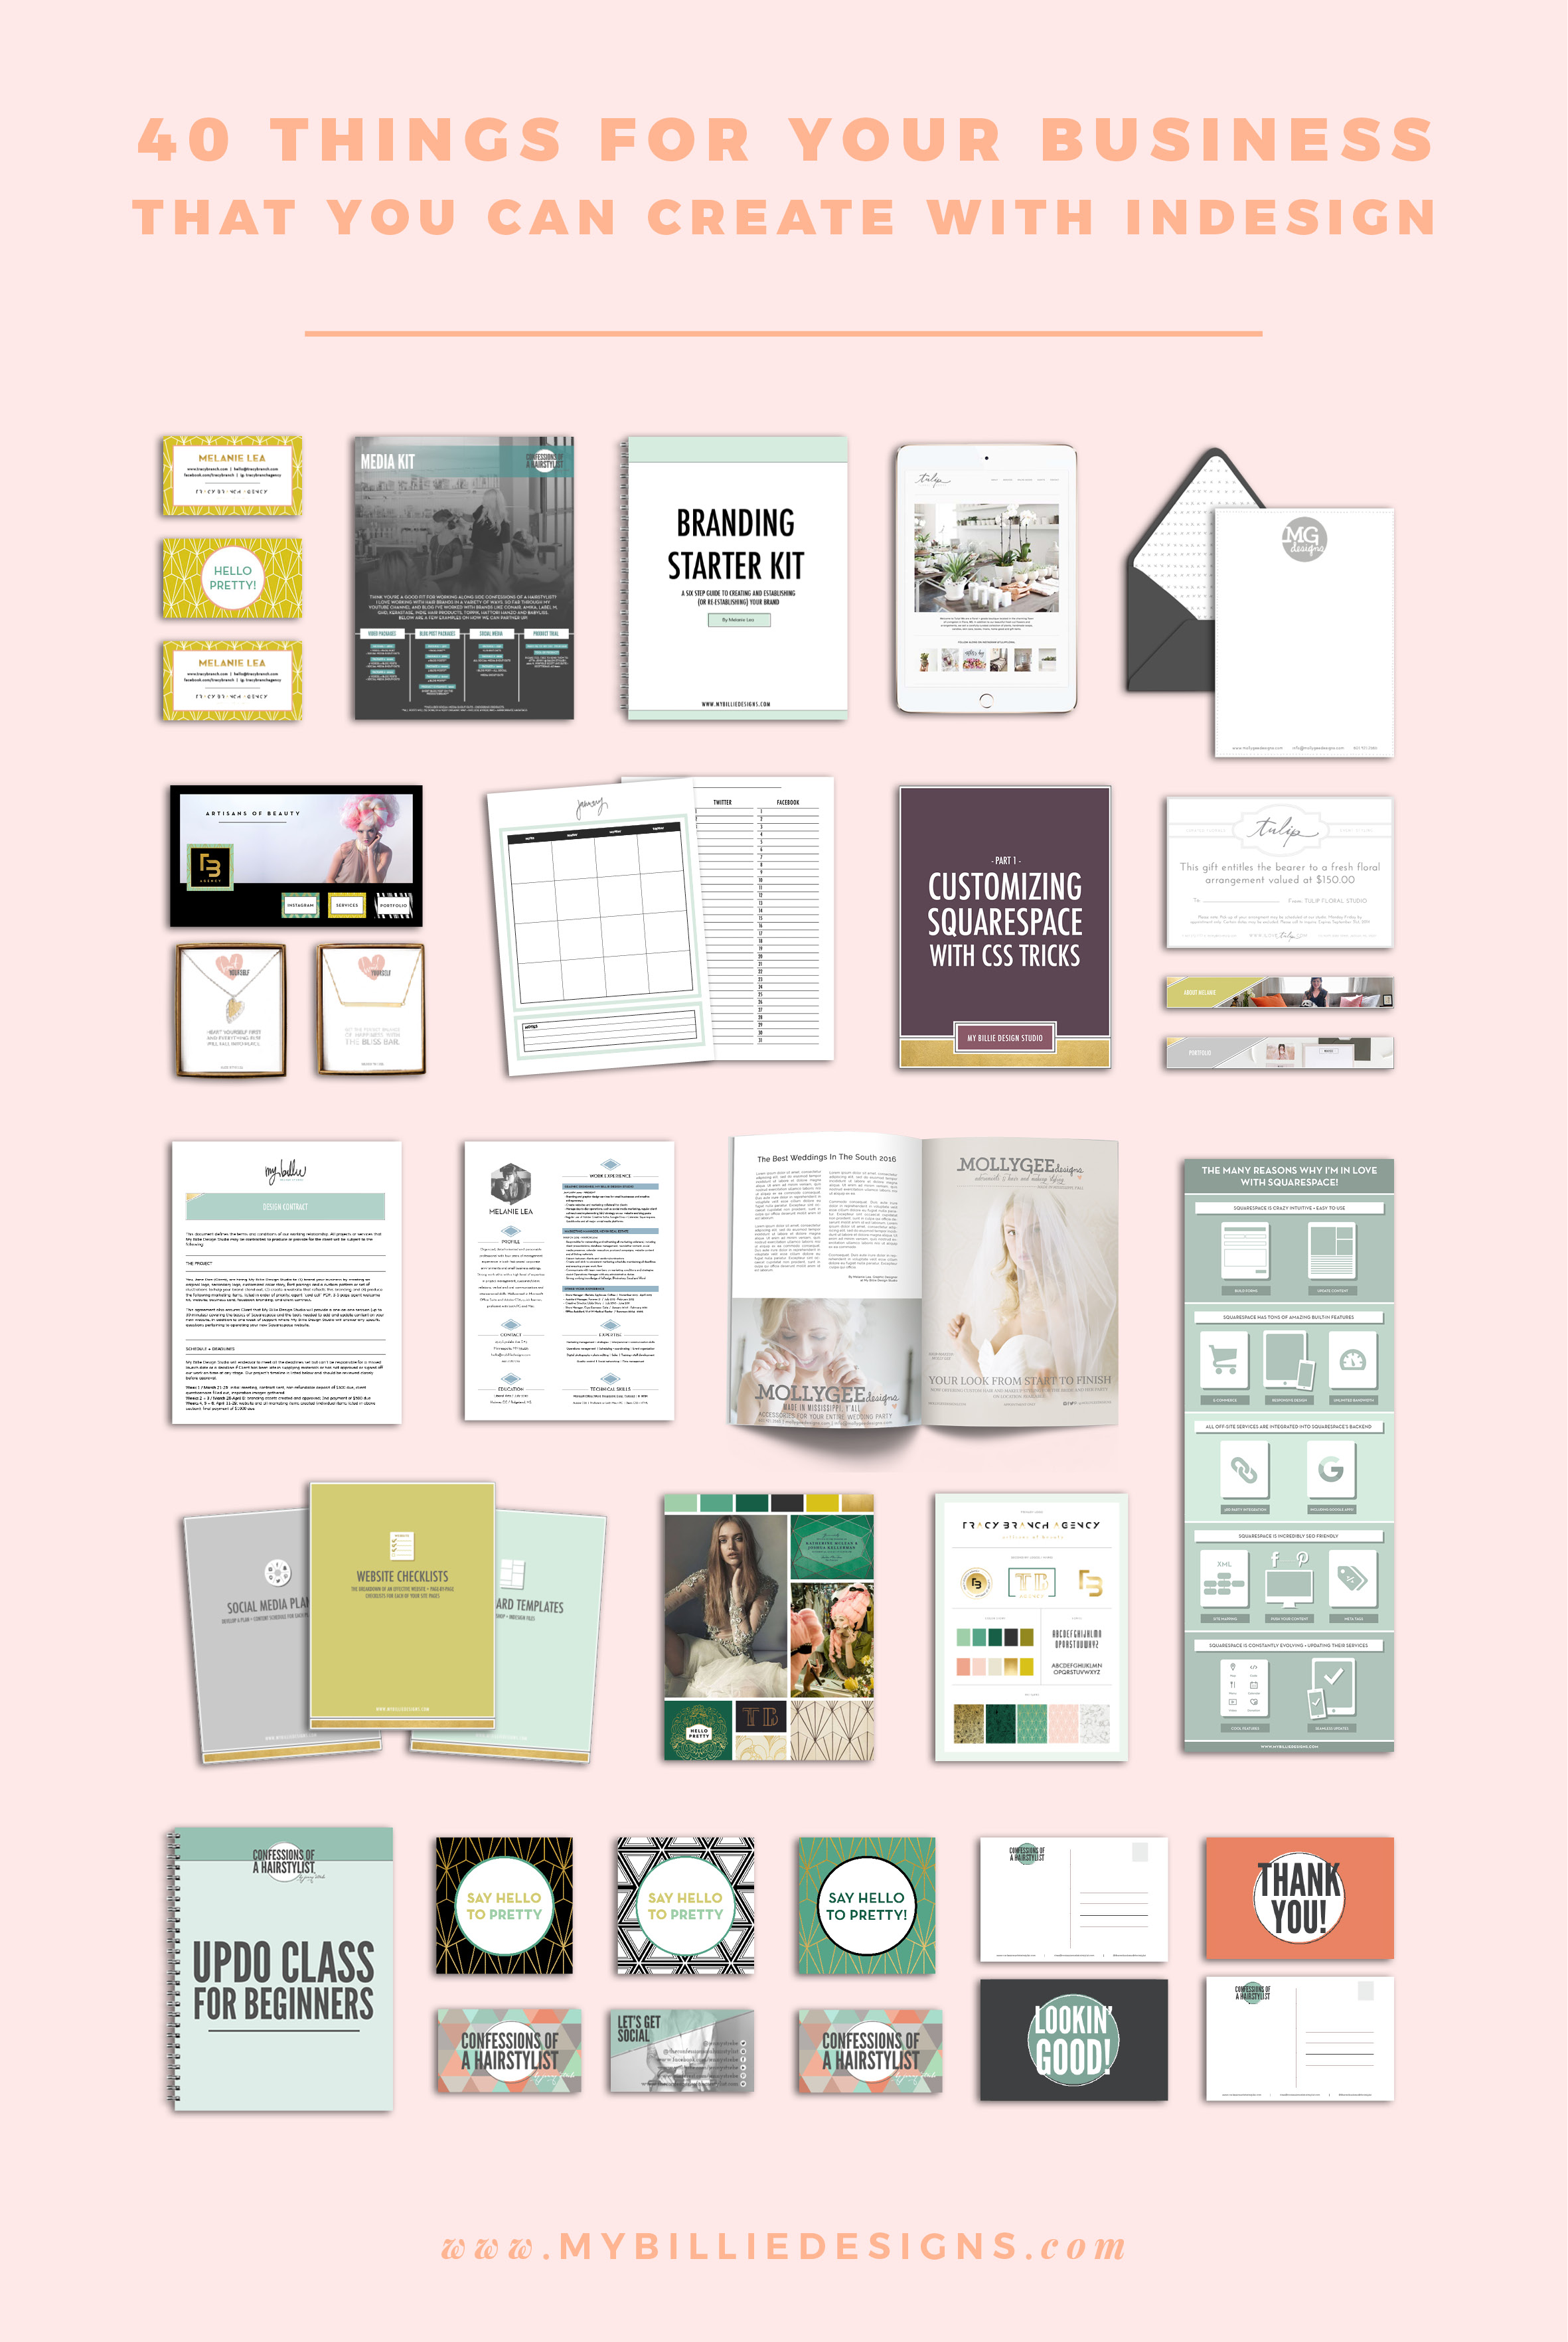 40 things you can create for your business with Adobe InDesign